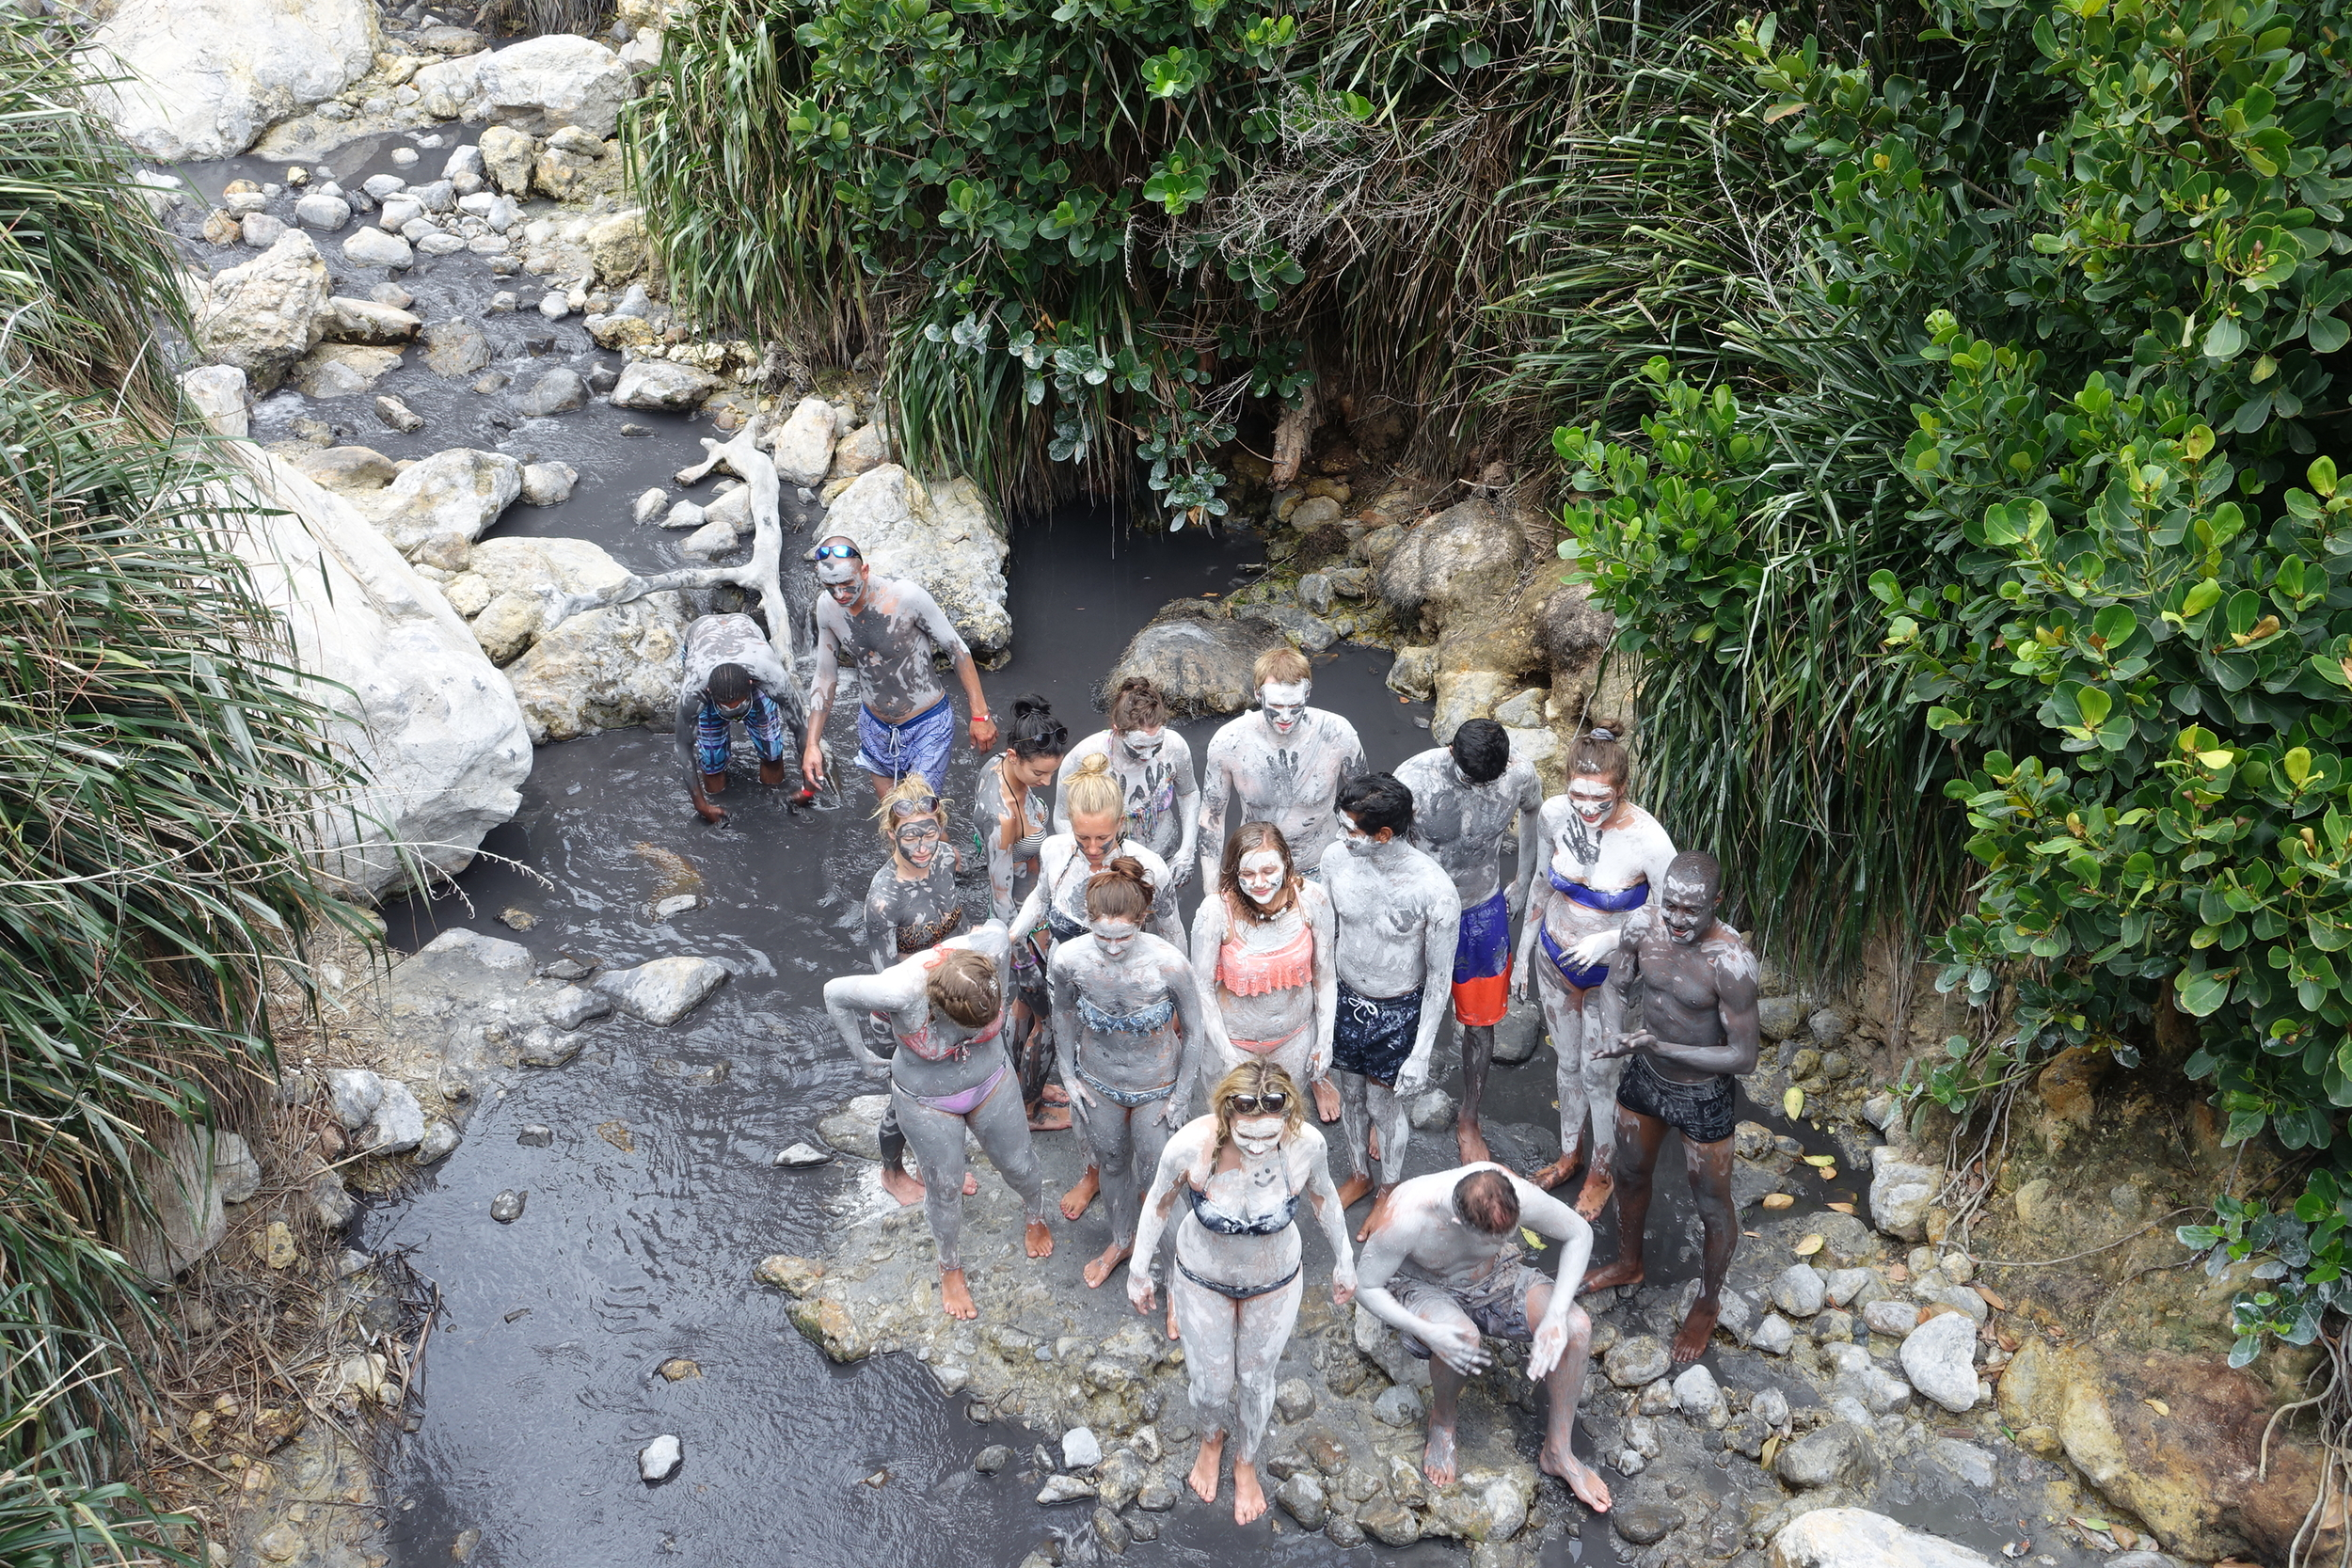 mud bathers - they paid extra for this.